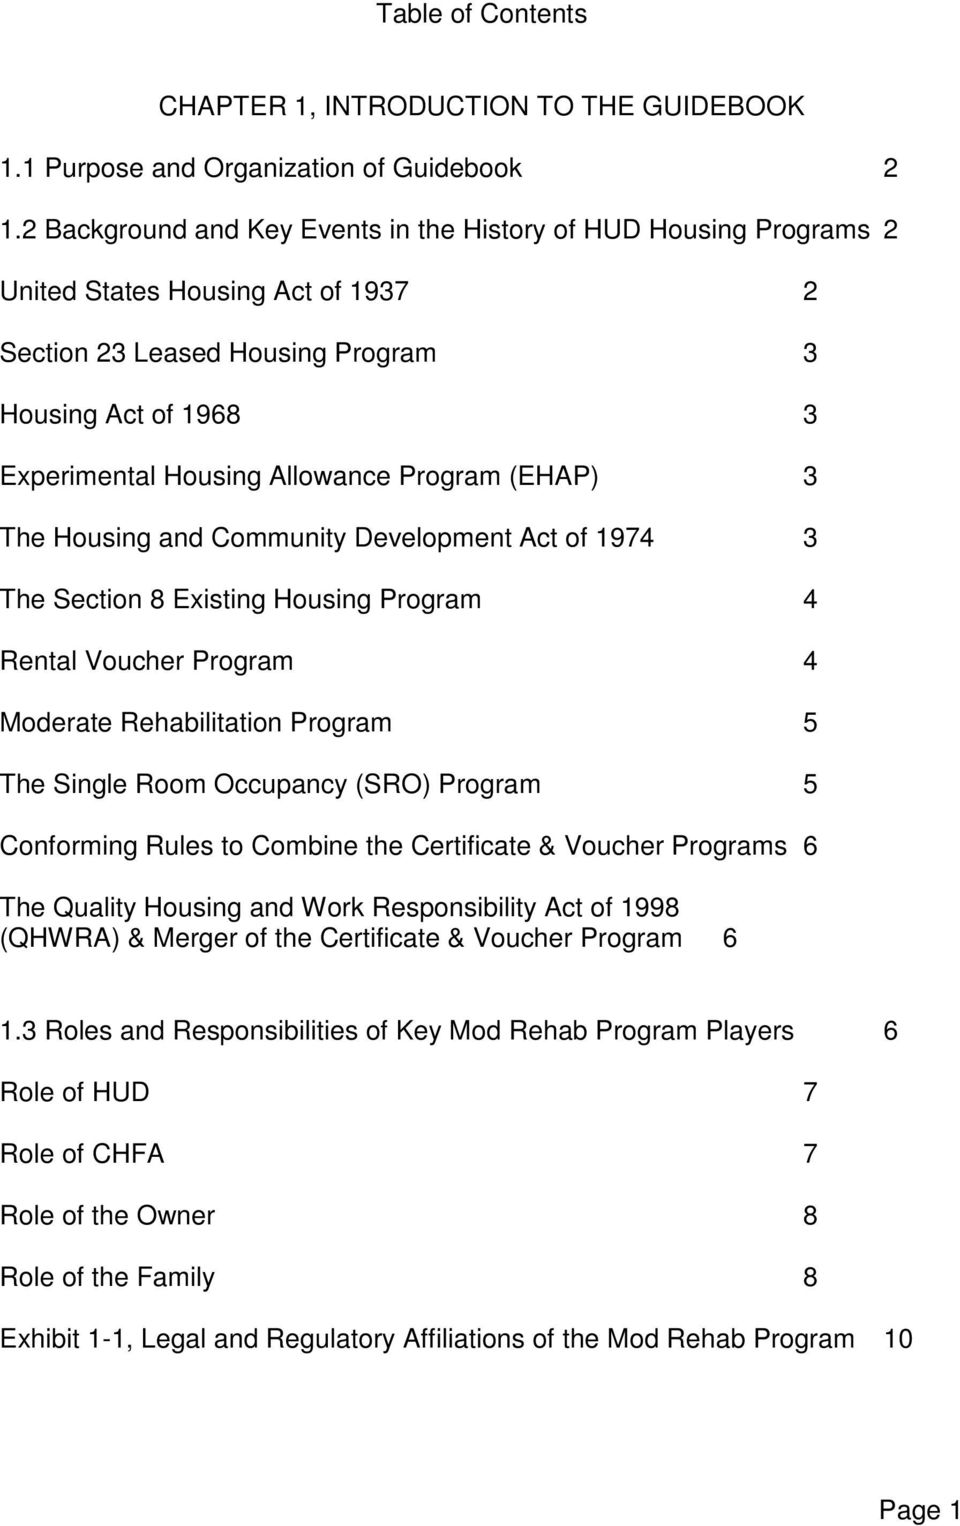 Program (EHAP) 3 The Housing and Community Development Act of 1974 3 The Section 8 Existing Housing Program 4 Rental Voucher Program 4 Moderate Rehabilitation Program 5 The Single Room Occupancy